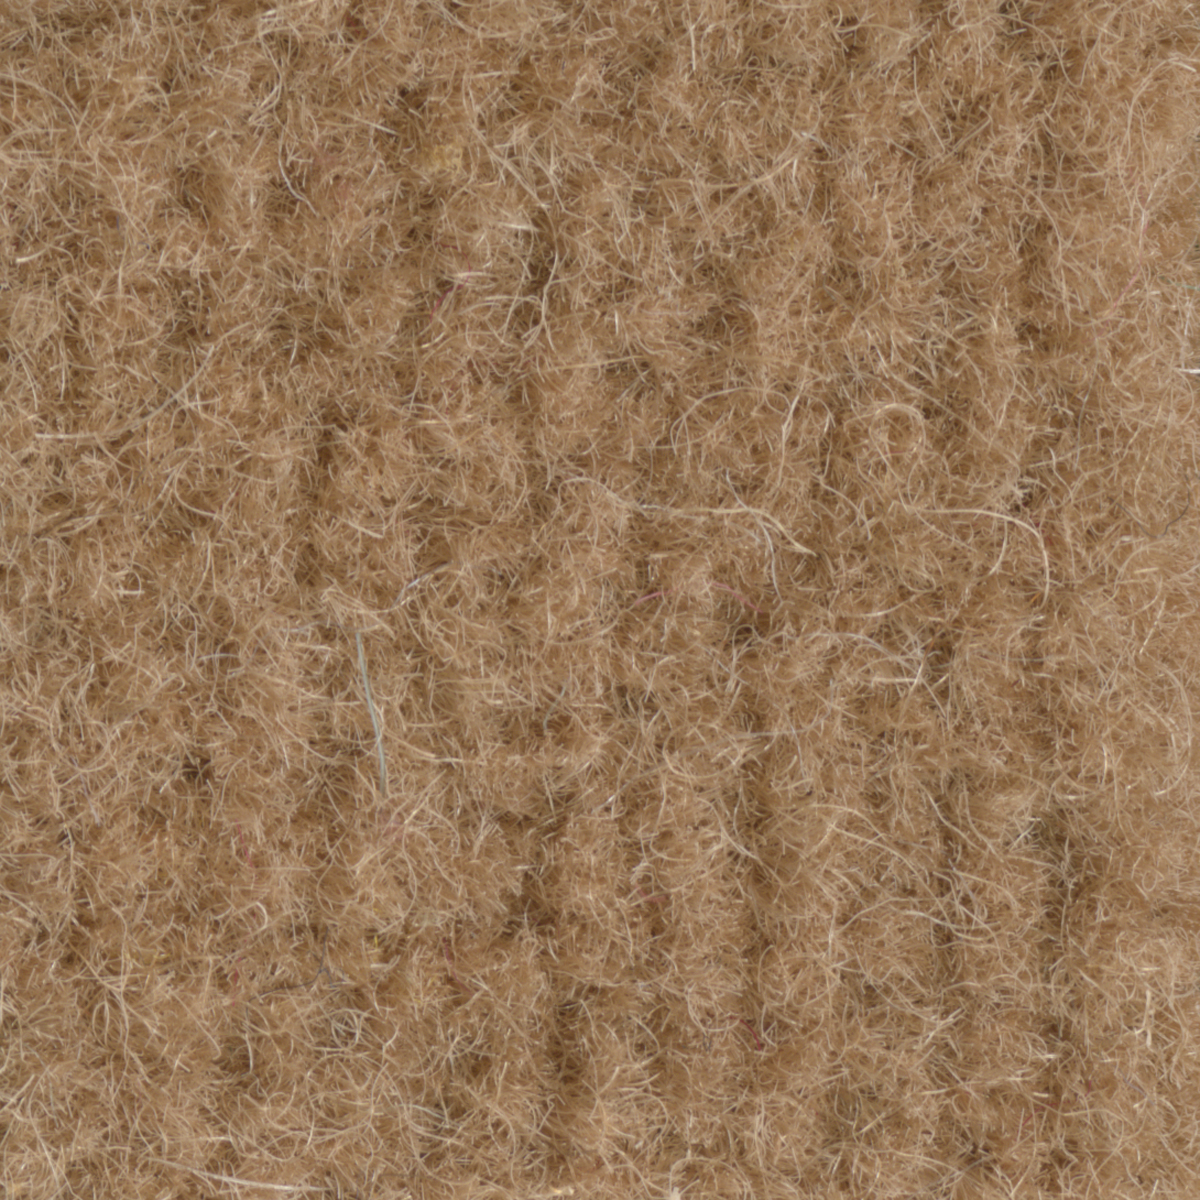 SAFFRON ENGLISH WILTON II WOOL CARPET